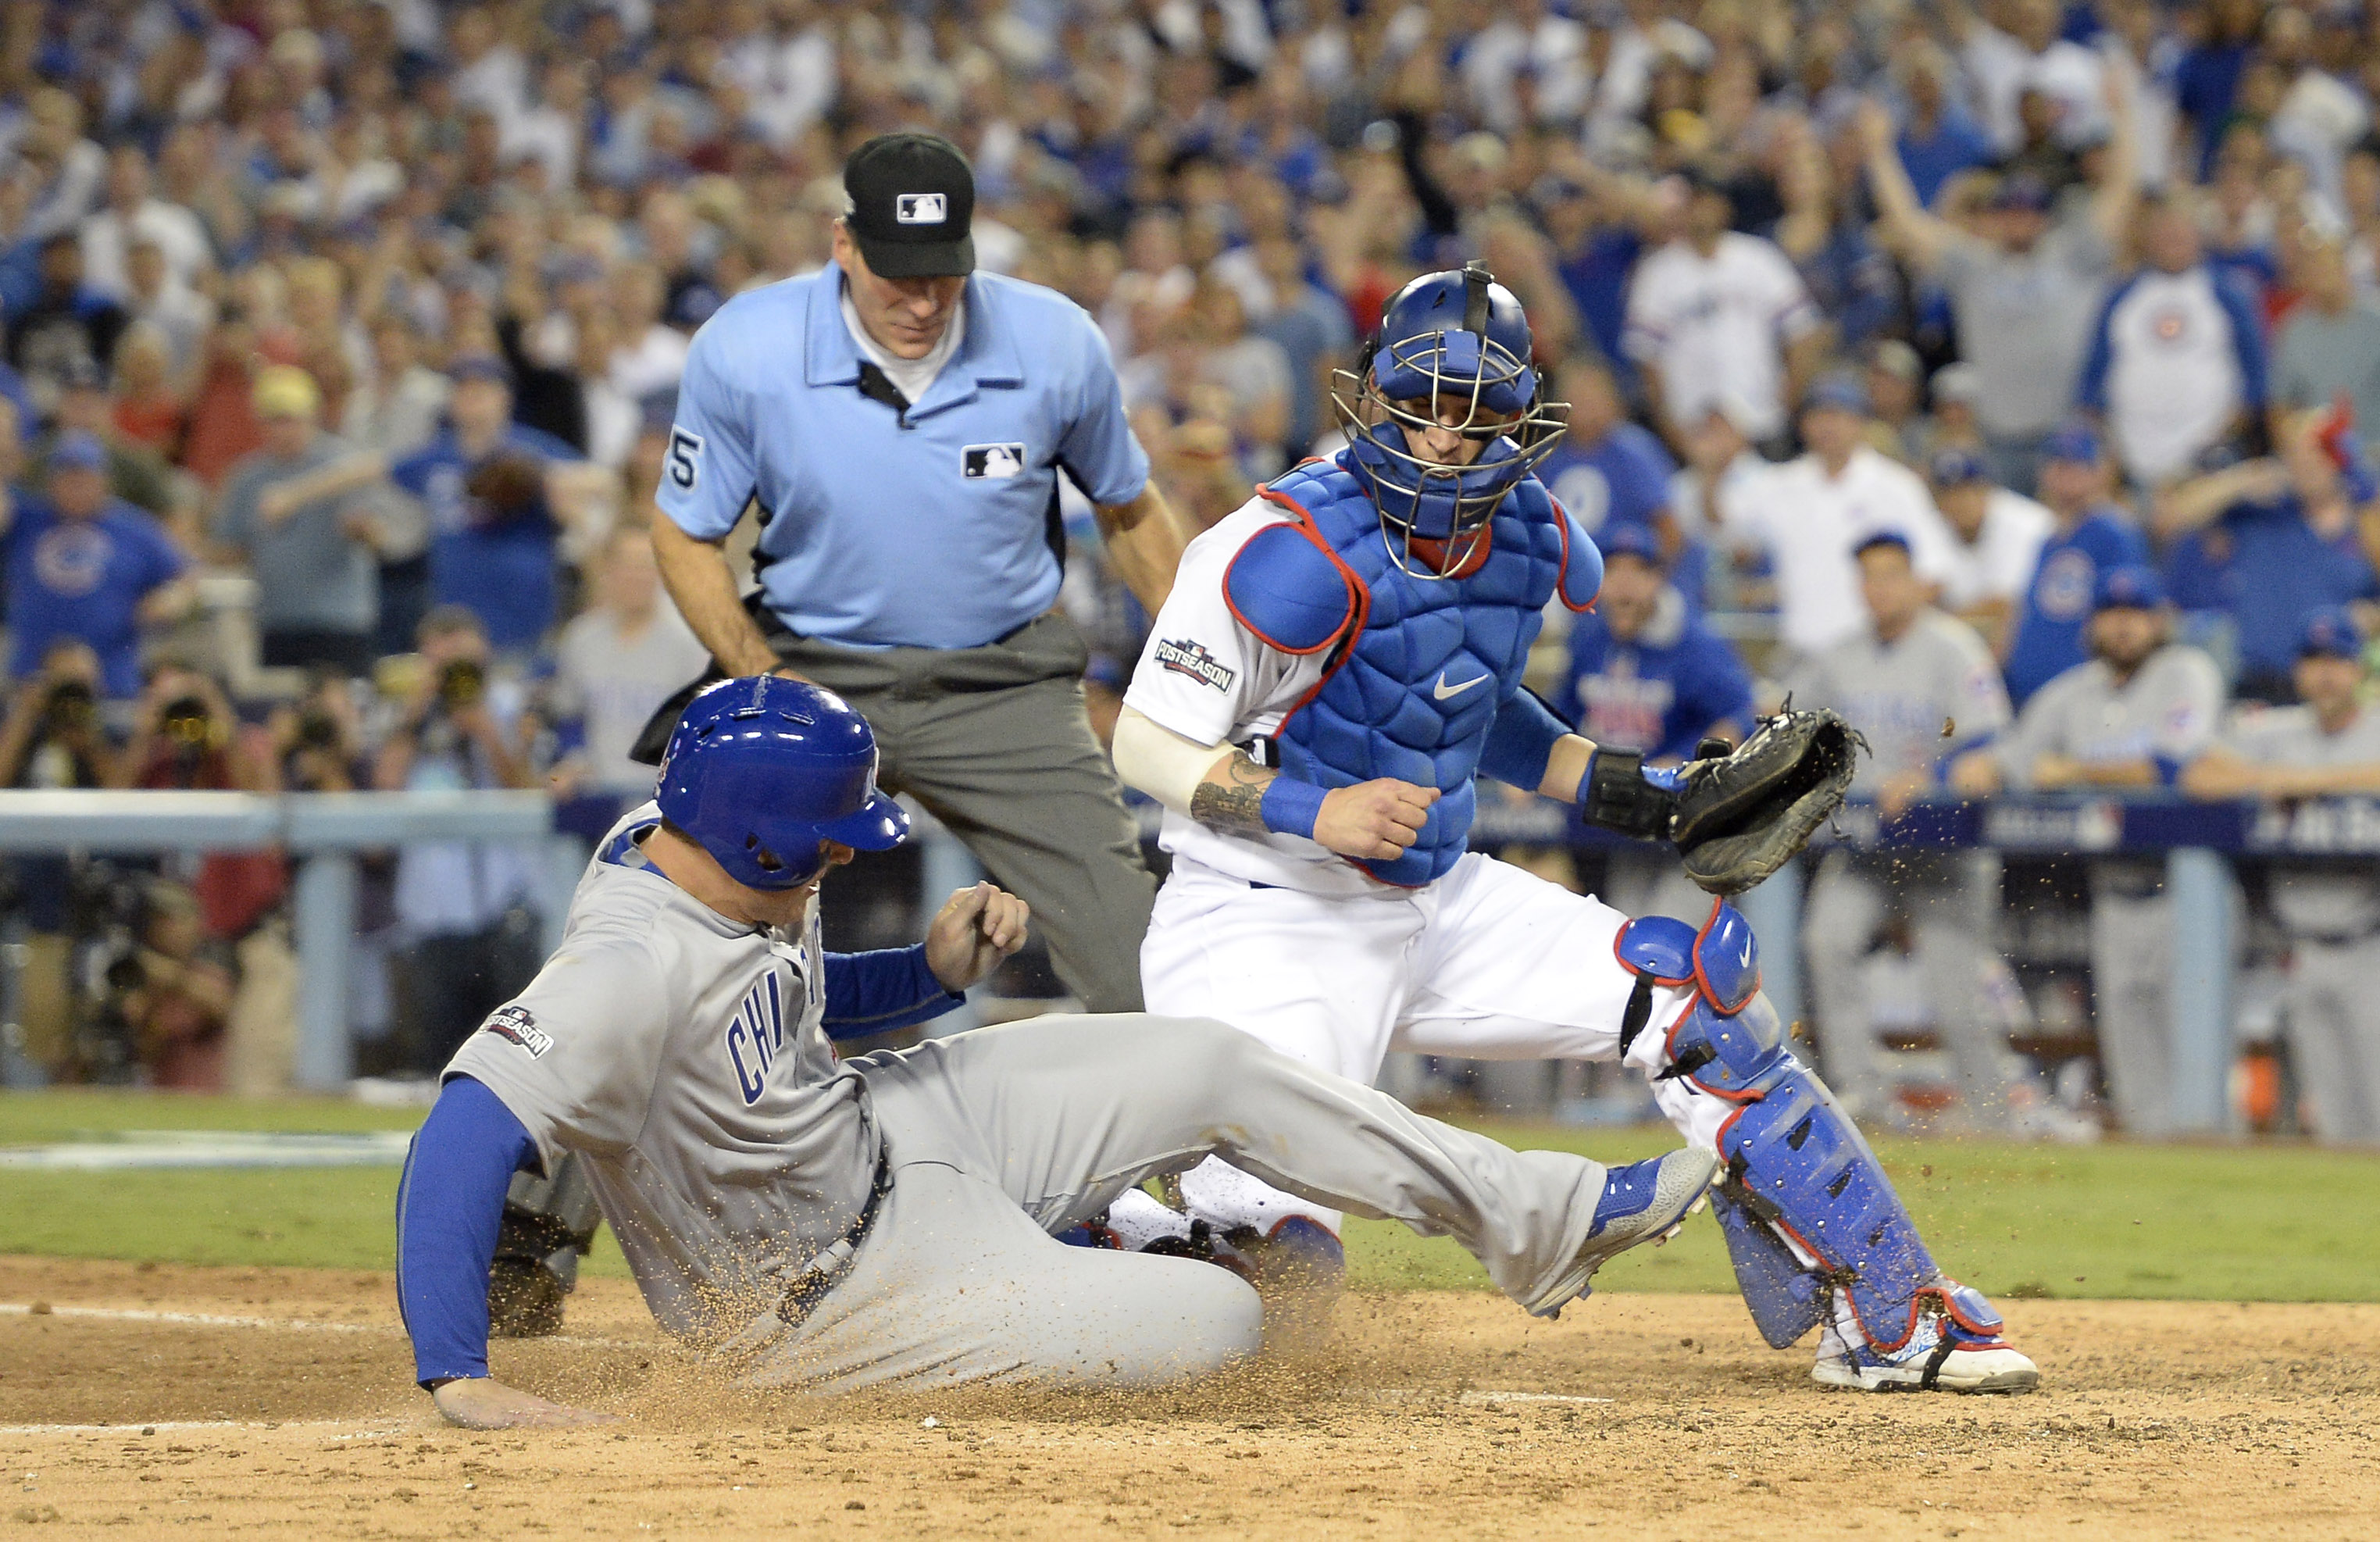 Oct 19, 2016; Los Angeles, CA, USA; Chicago Cubs first baseman Anthony Rizzo (44) scores a run past Los Angeles Dodgers catcher Yasmani Grandal (9)  in the 6th inning during game four of the 2016 NLCS playoff baseball series at Dodger Stadium. Mandatory Credit: Richard Mackson-USA TODAY Sports